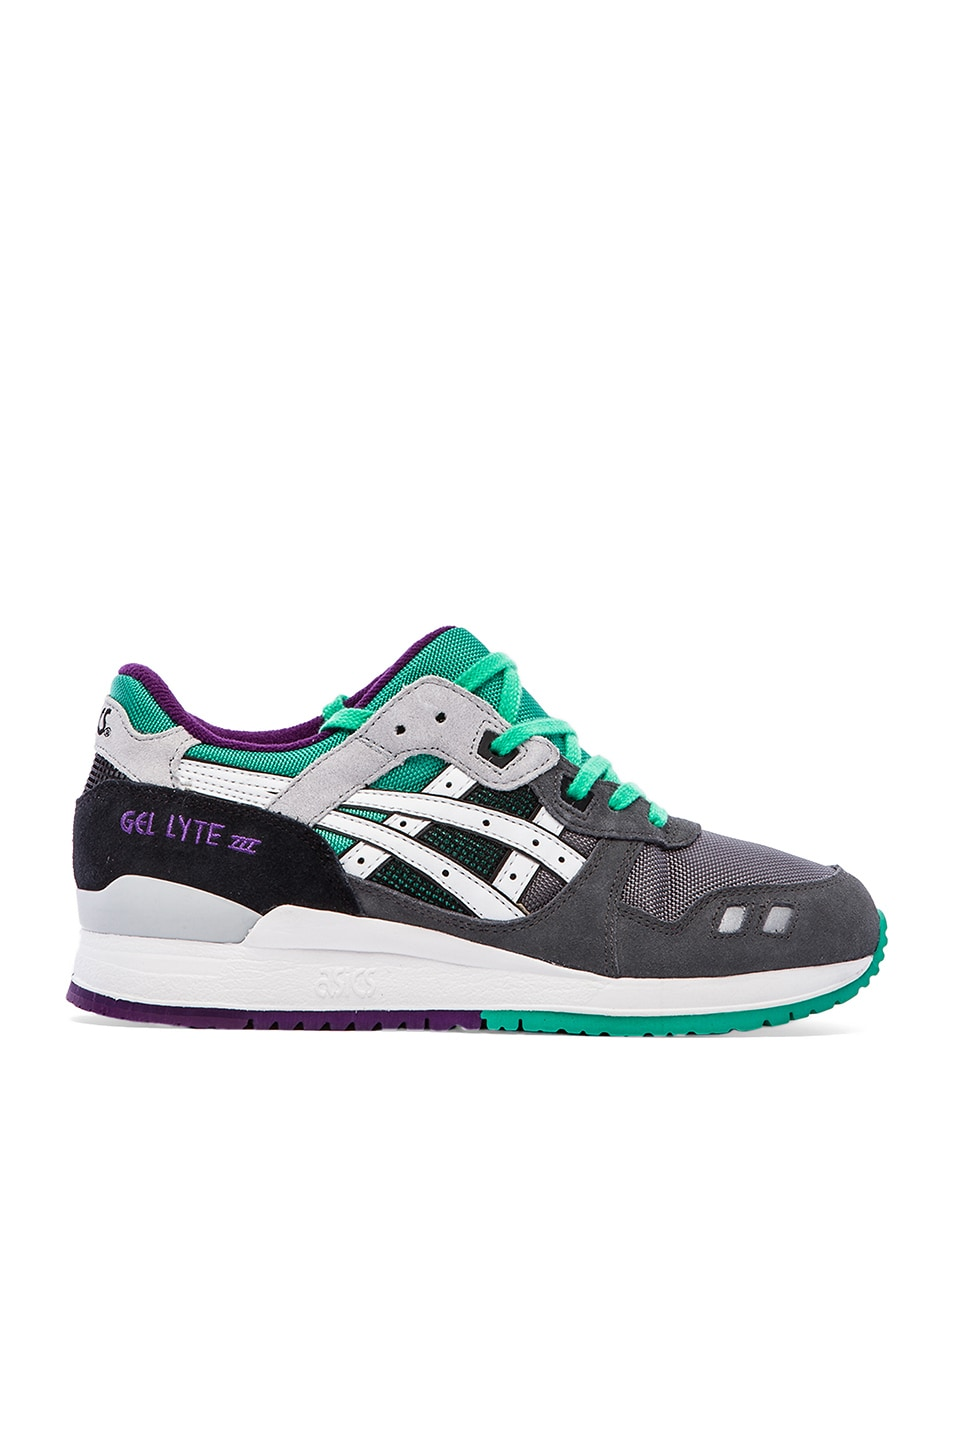 Asics Gel-Lyte III in Grey & White